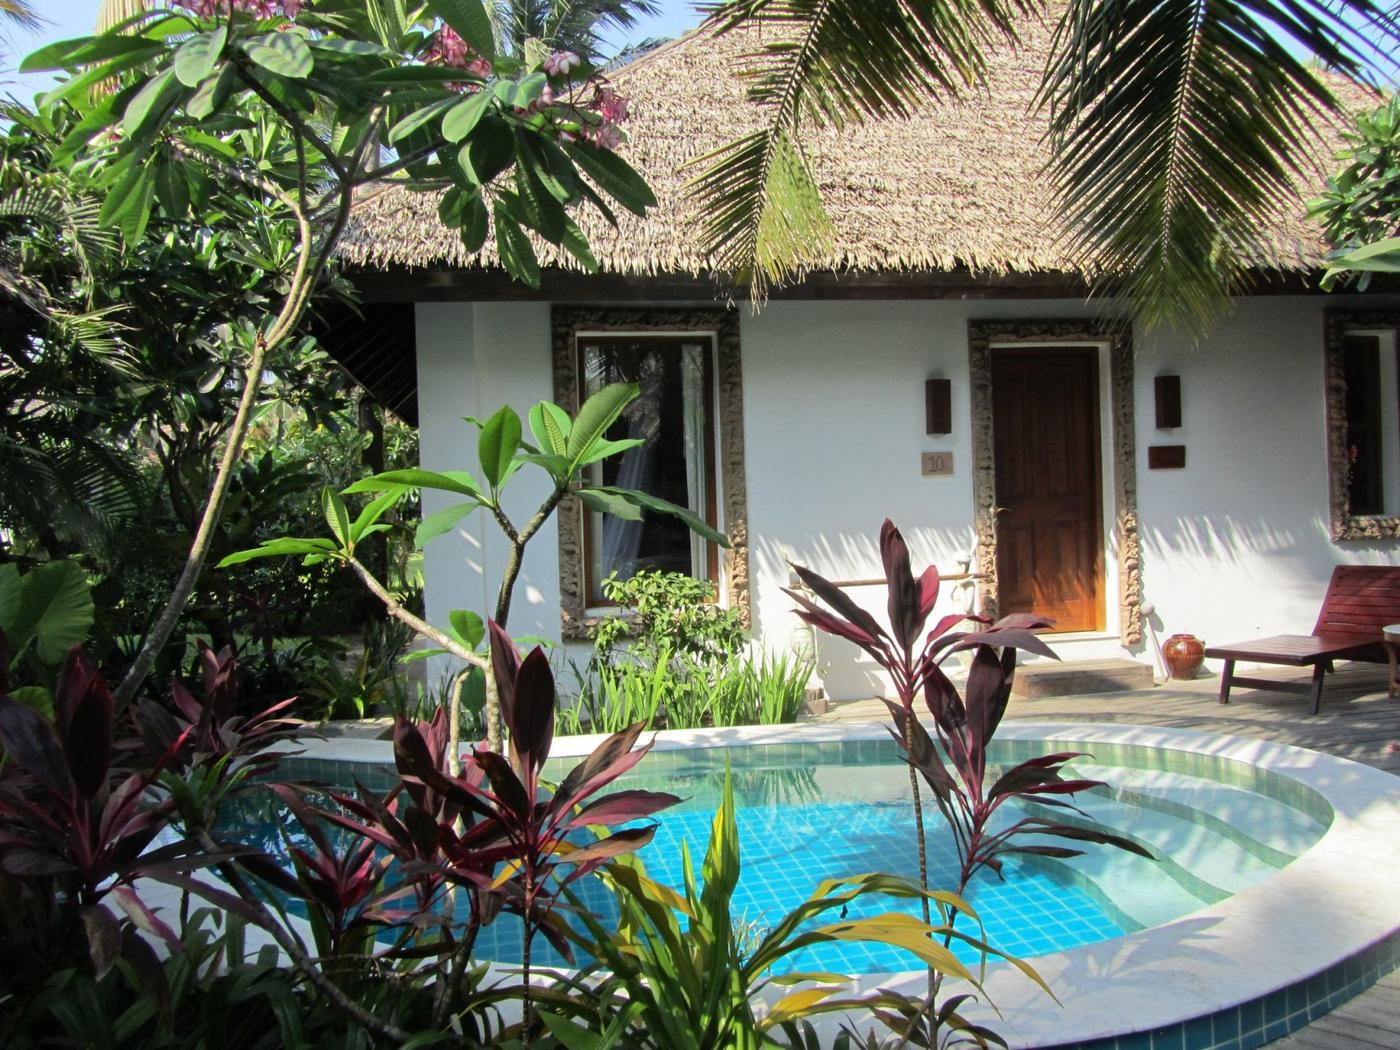 Pool Villa, Ngapali Bay Villas & Spa